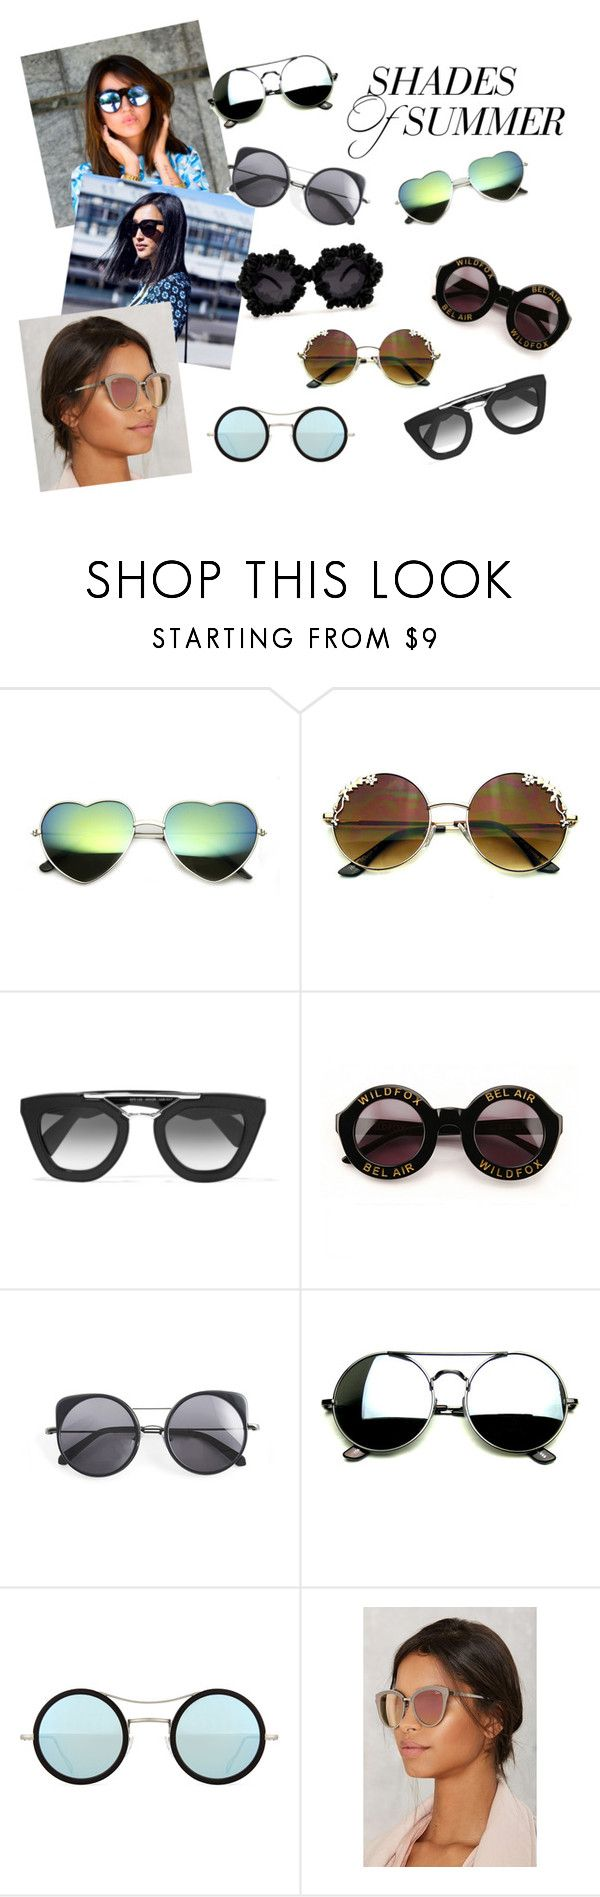 """""""Shades of summer"""" by christine-andresen-1 on Polyvore featuring Prada, Wildfox, Wood Wood, A-Morir by Kerin Rose, Kyme and Quay"""